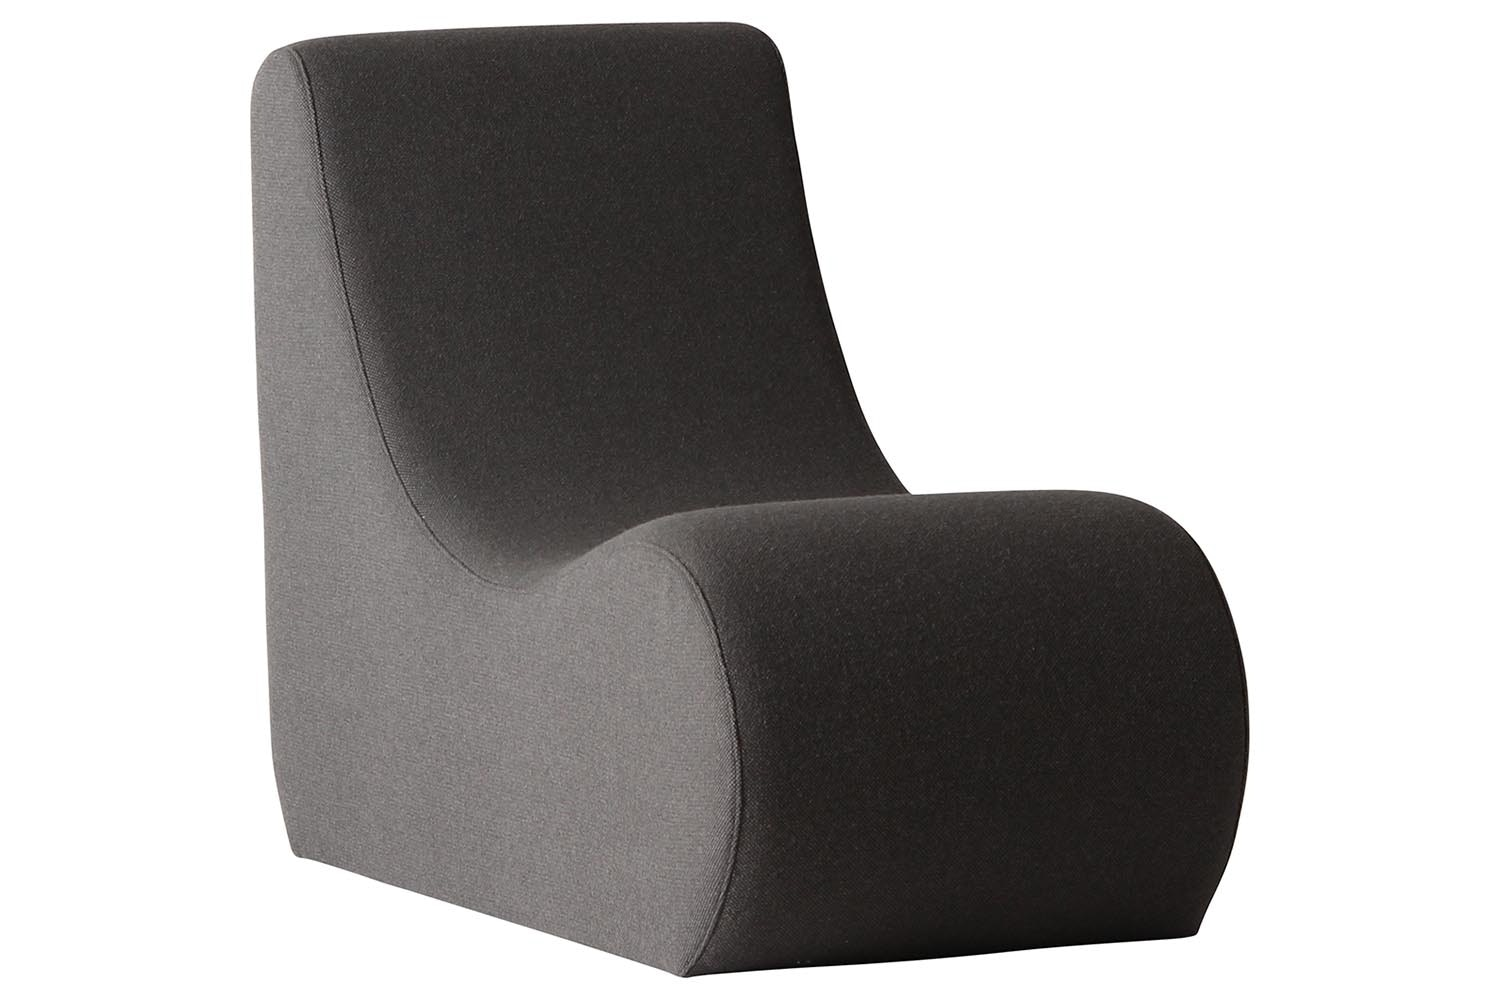 Welle 2 Lounge Seating by Verner Panton for Verpan